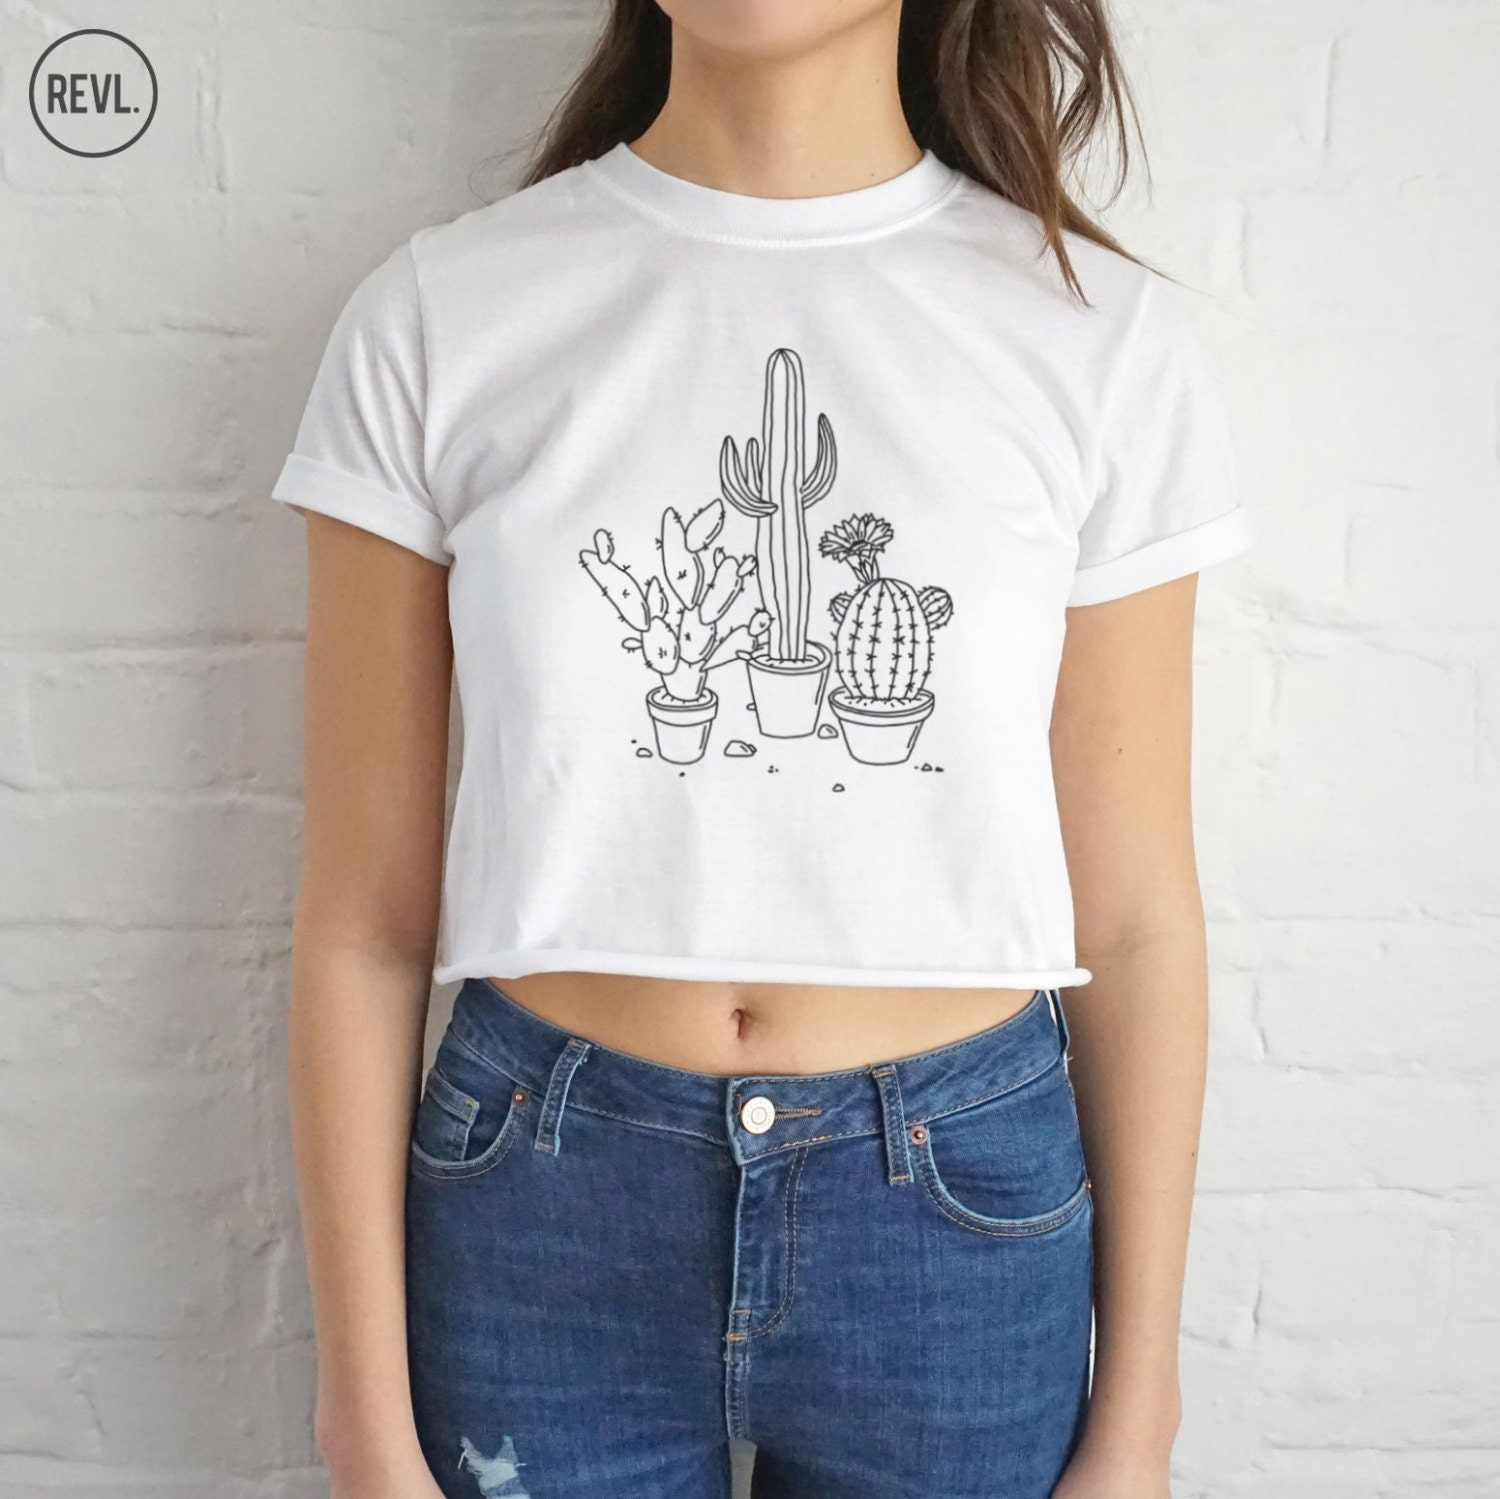 cactus drawing crop top t shirt shirt tee cropped fashion. Black Bedroom Furniture Sets. Home Design Ideas